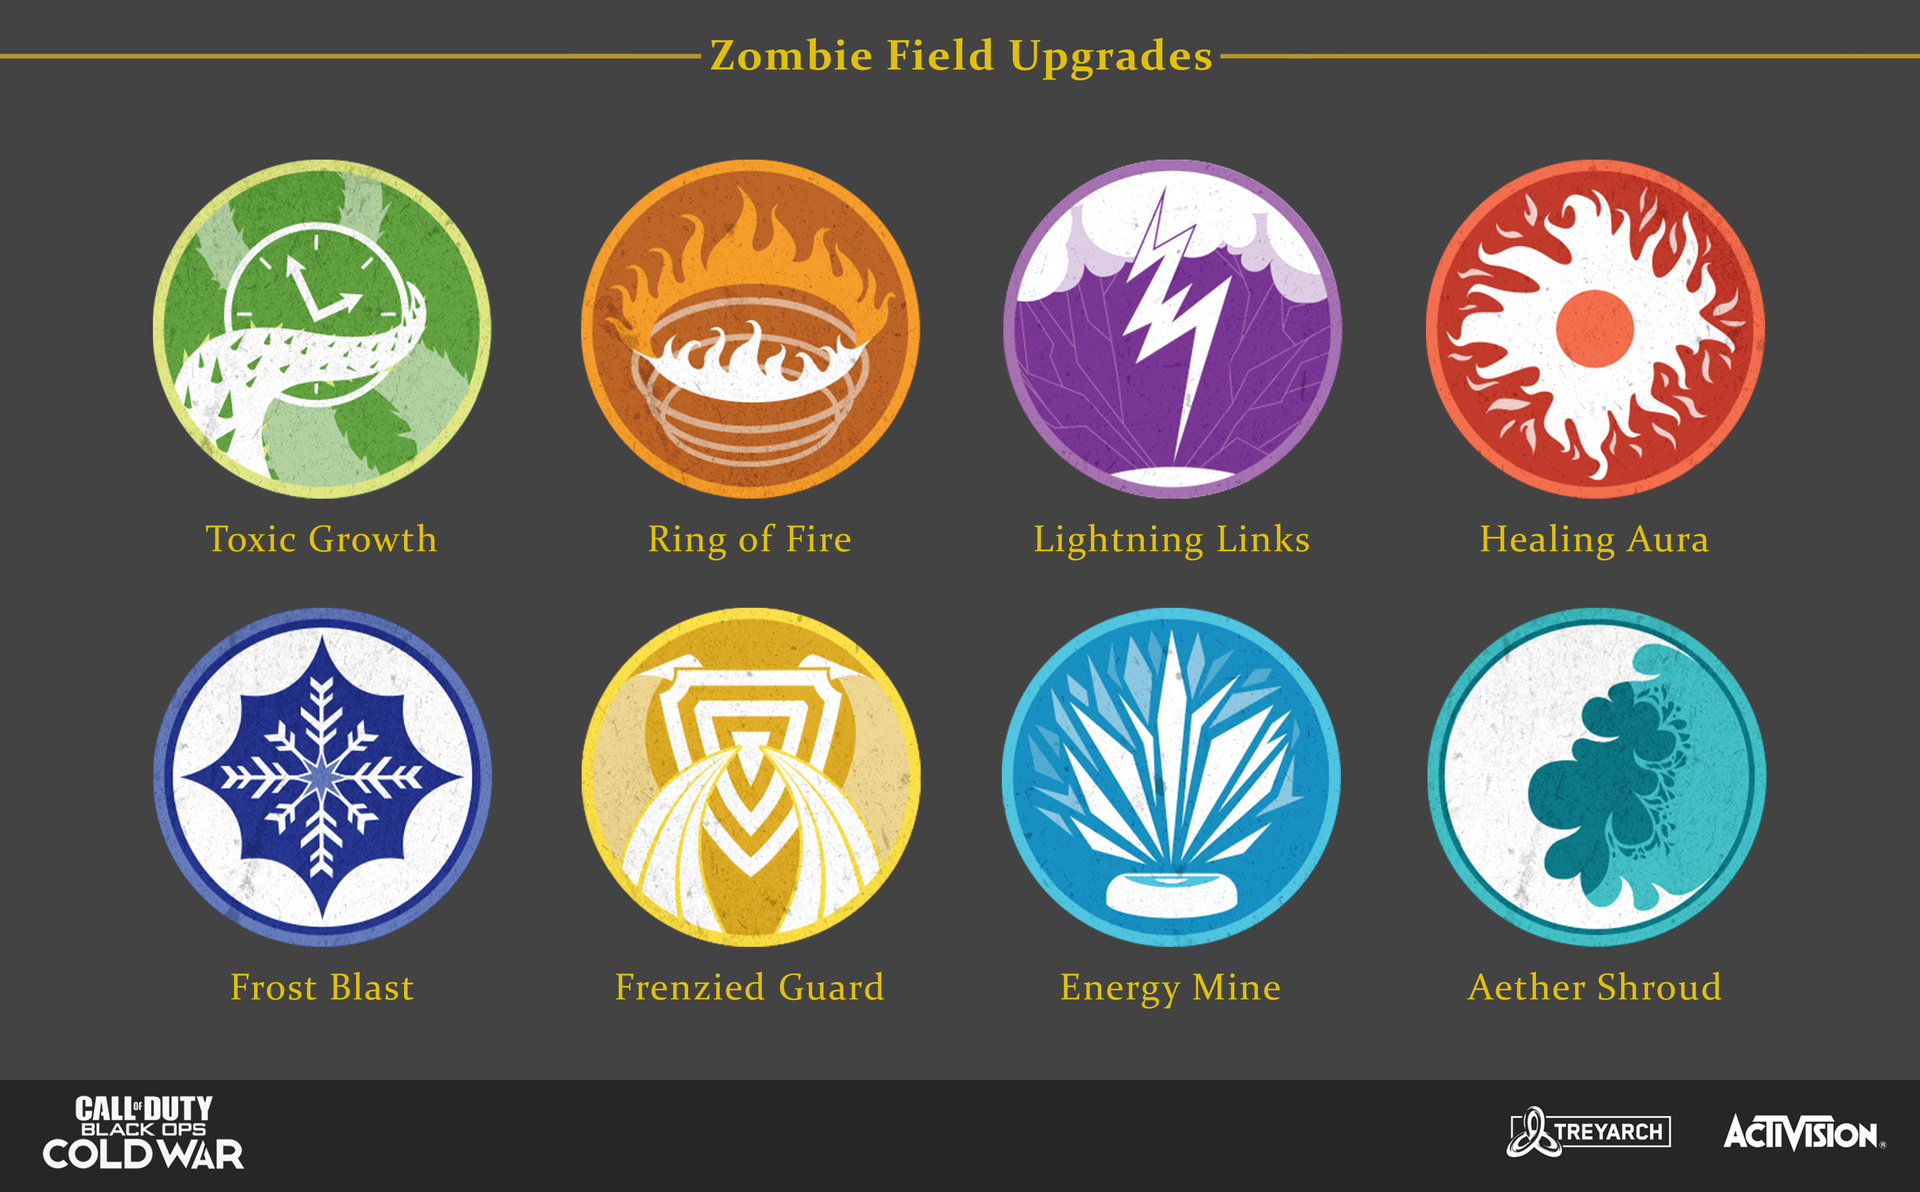 Zombie Field Upgrades